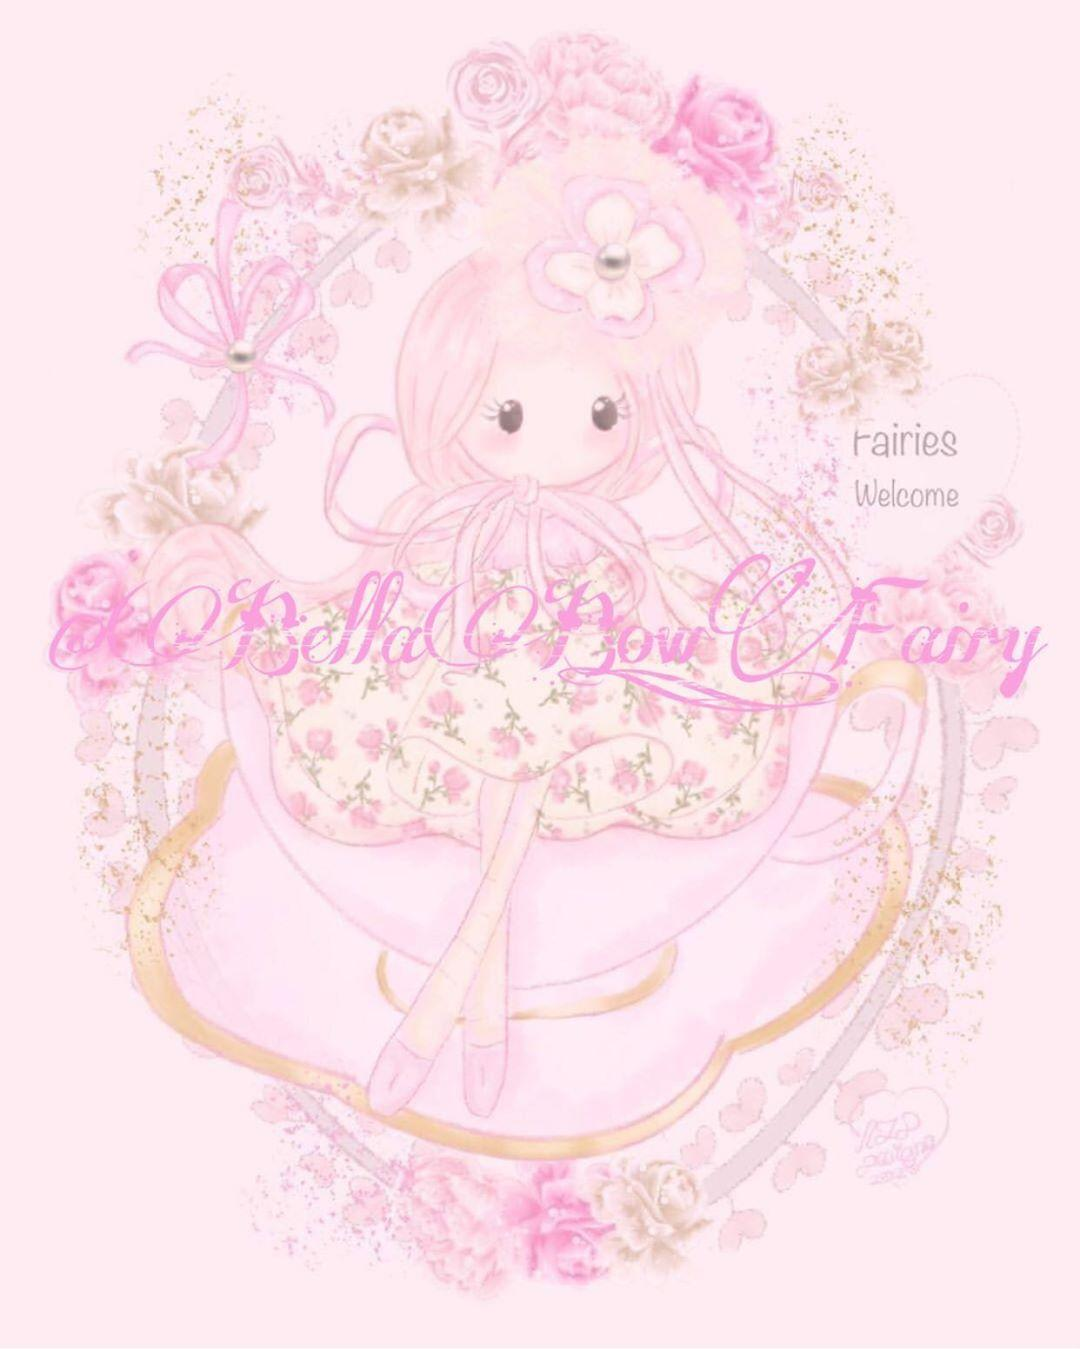 Image of Fairy Illustrations